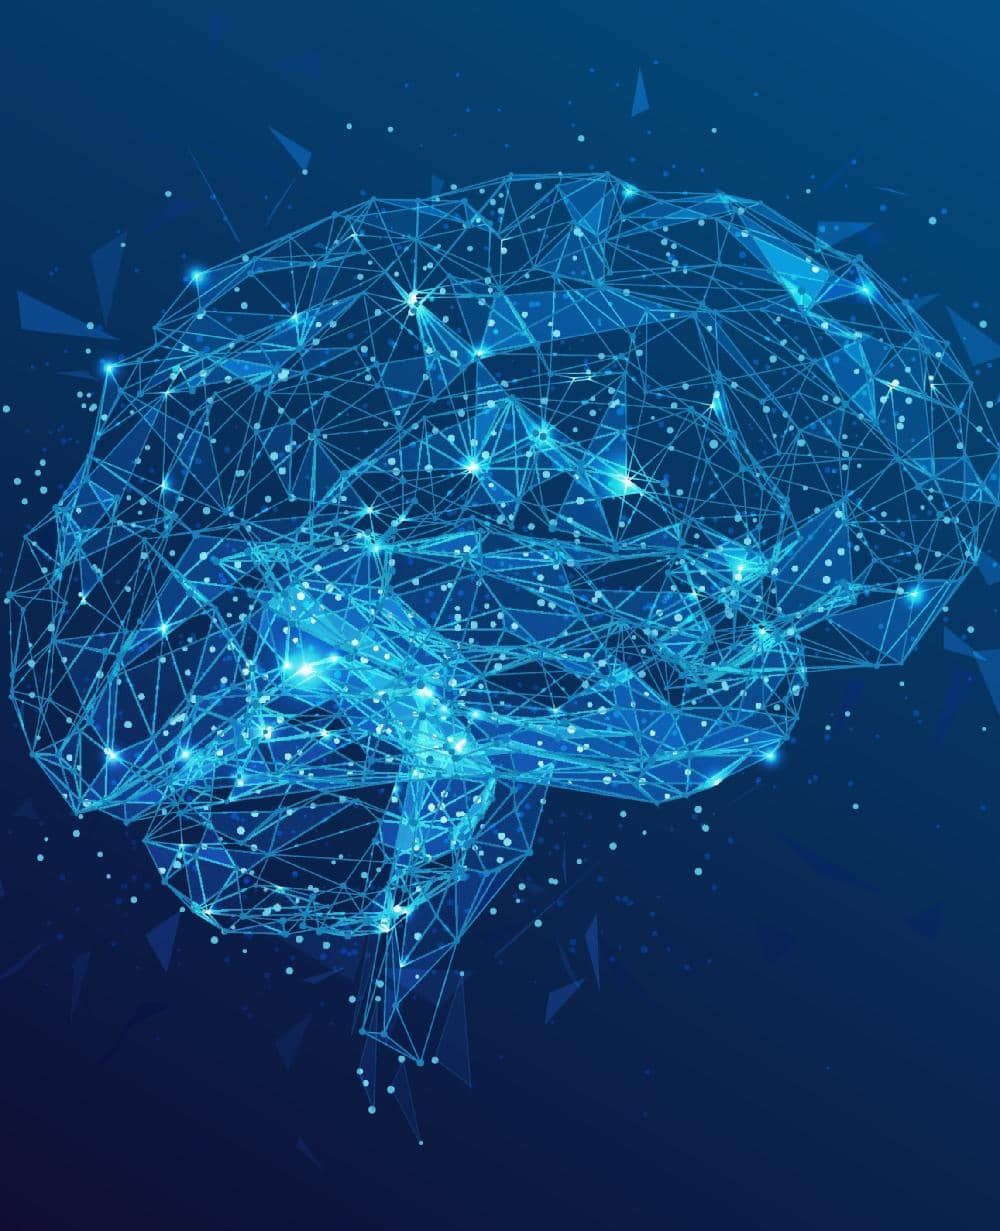 WILL WE EVER BE ABLE TO UPLOAD OUR BRAINS?